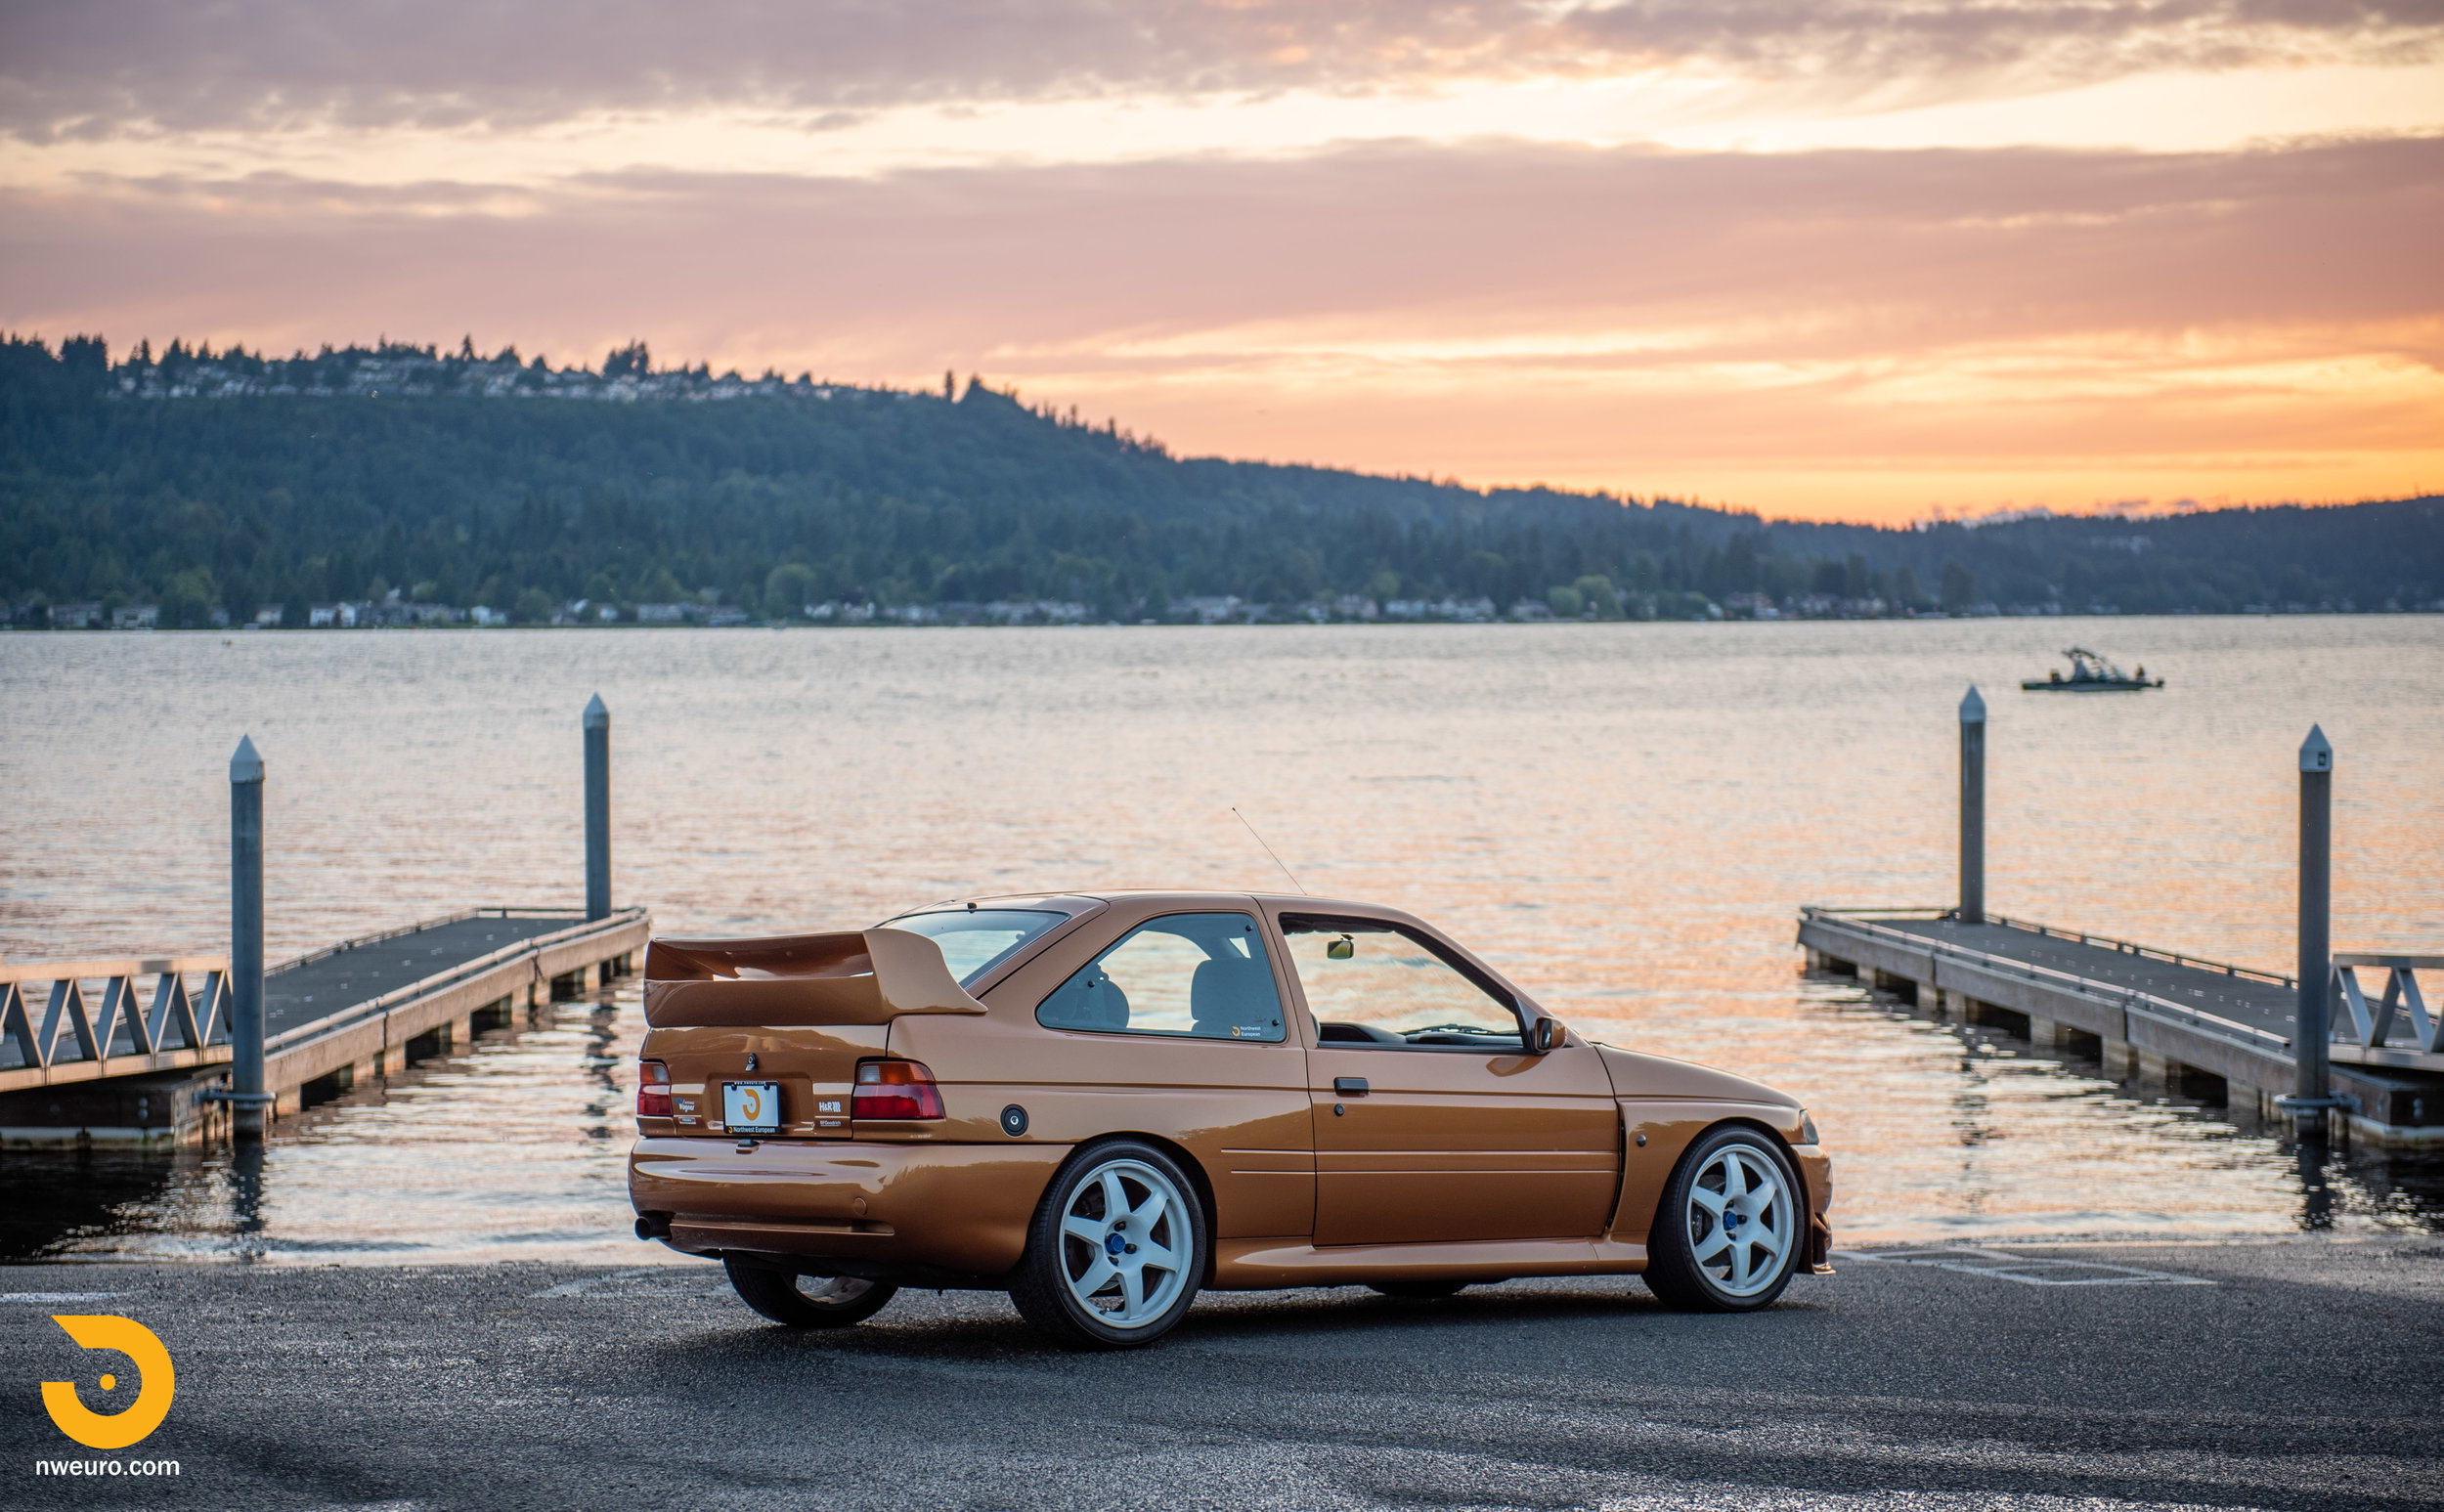 1995 Ford Escort Cosworth RS Gold-57.jpg